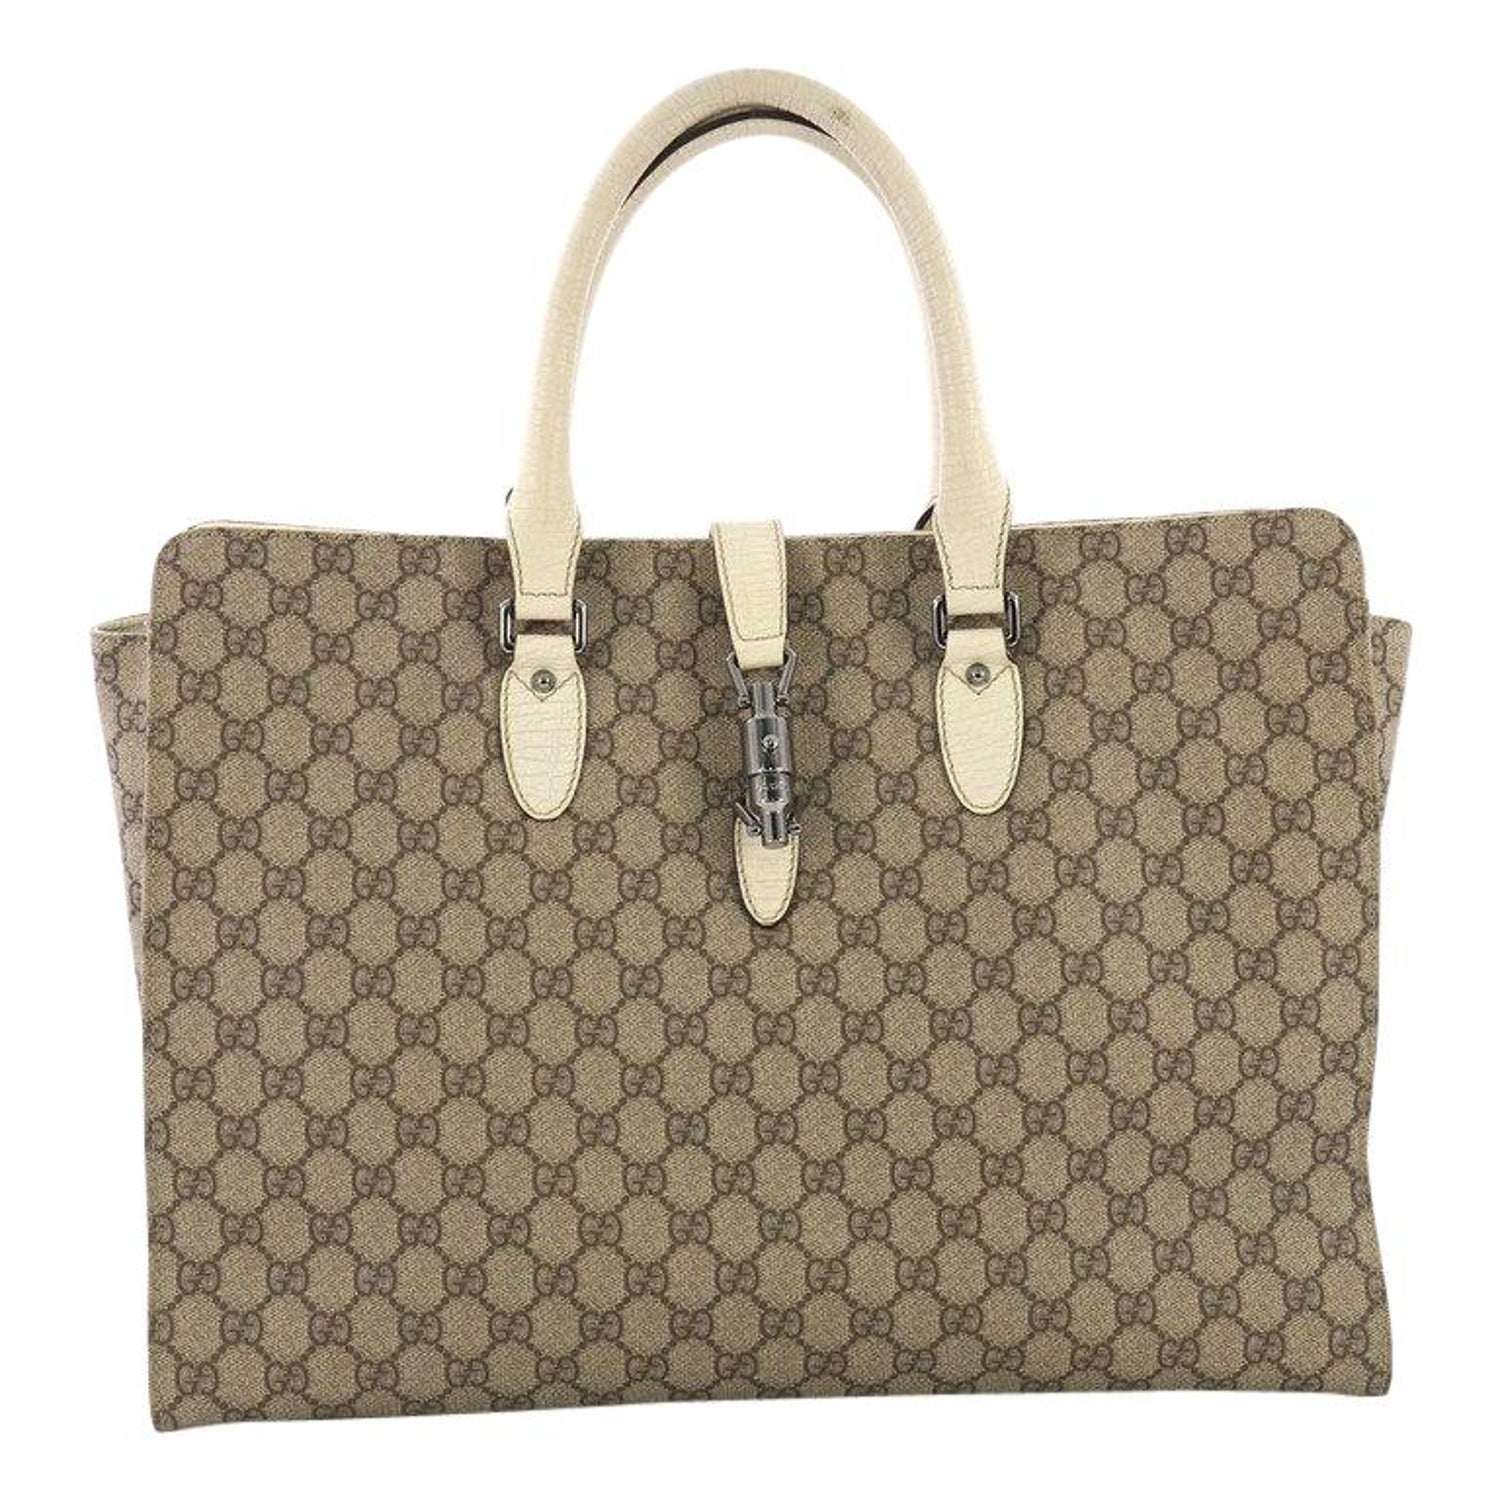 c0517b4d63c1 Gucci Jackie Soft Tote GG Coated Canvas Large at 1stdibs